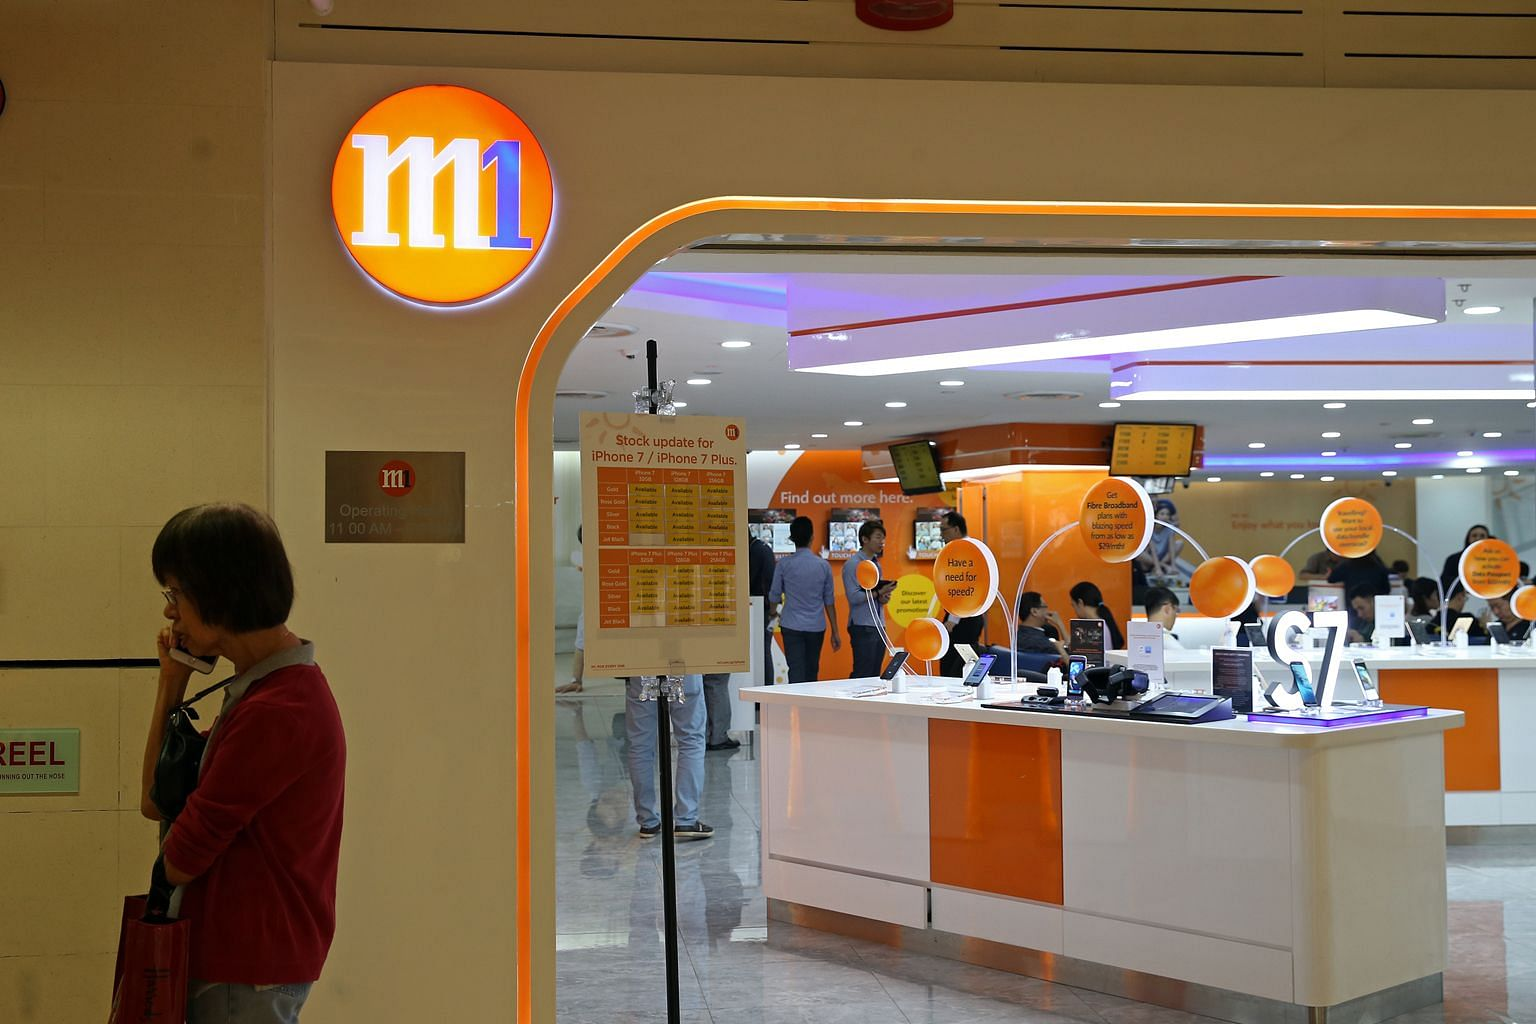 Last Friday, M1's controlling shareholders - Axiata Group, Keppel Telecommunications & Transportation and Singapore Press Holdings - said they had appointed Morgan Stanley Asia as financial adviser to assist with a strategic review of their stakes, w